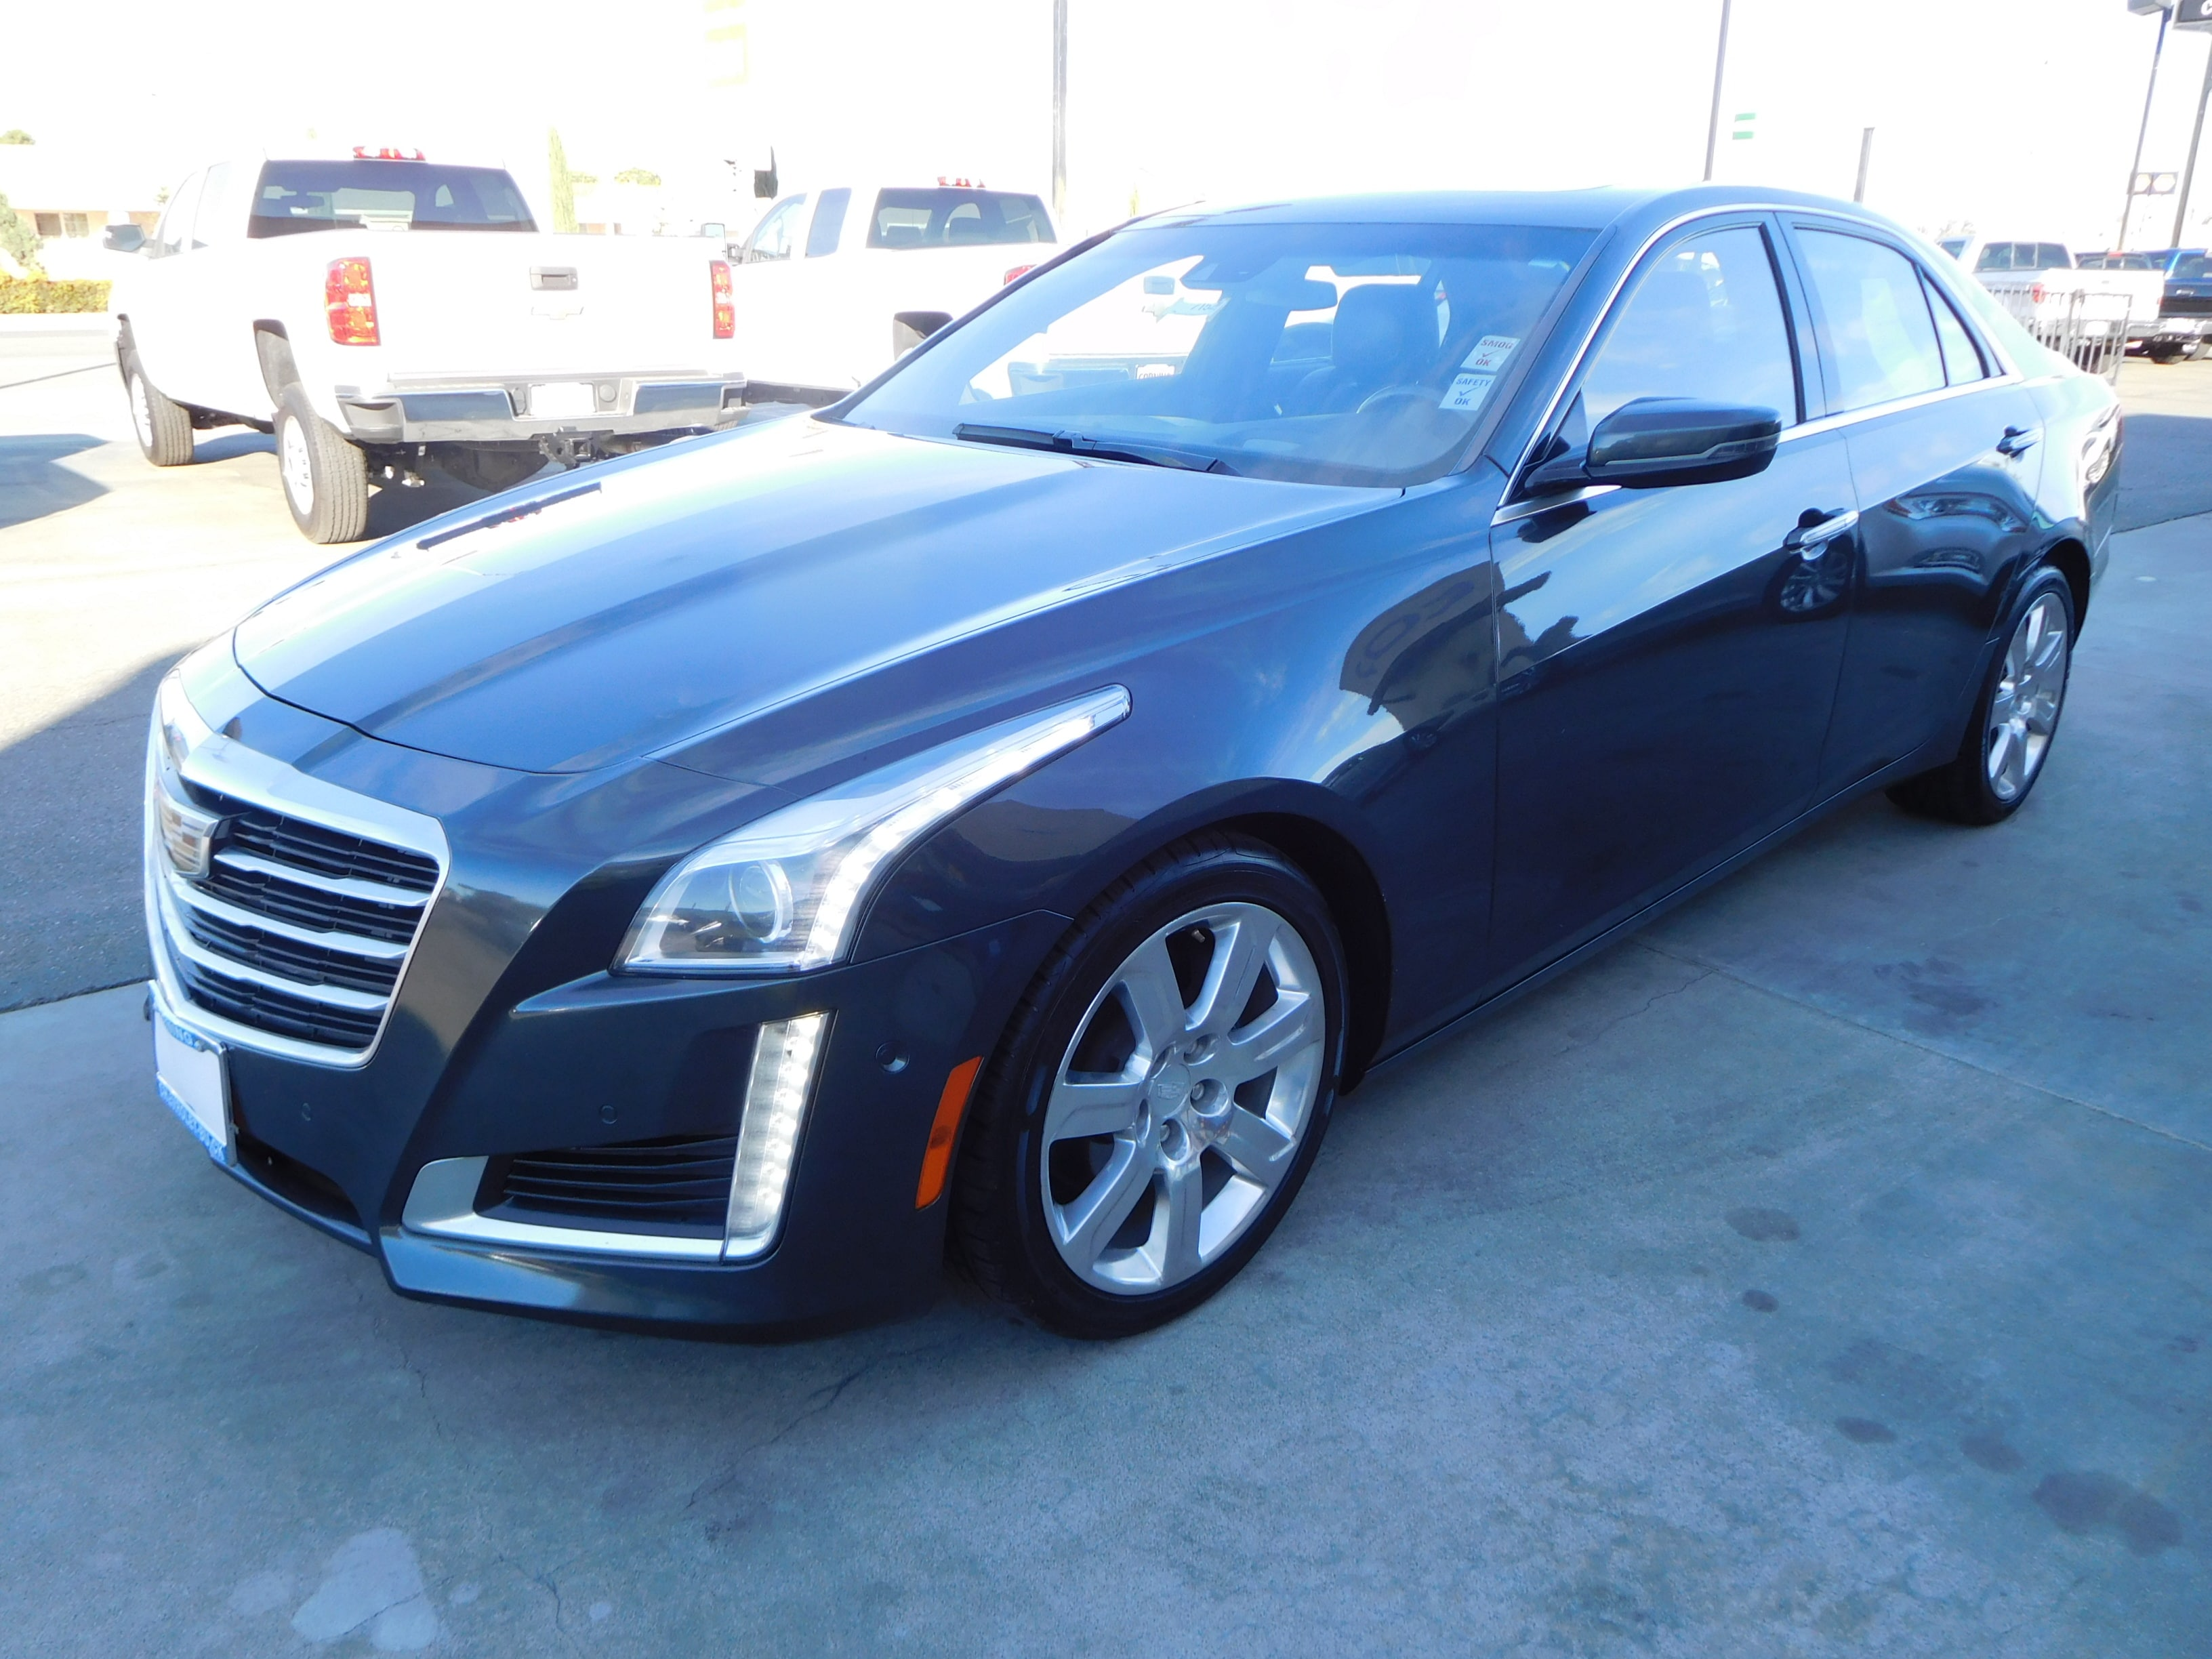 New Cadillac Cts Sedan Inventory Anderson >> New and Used Ford Dealer Corning, CA | Serving Red Bluff, Chico & Anderson Area | Corning Ford